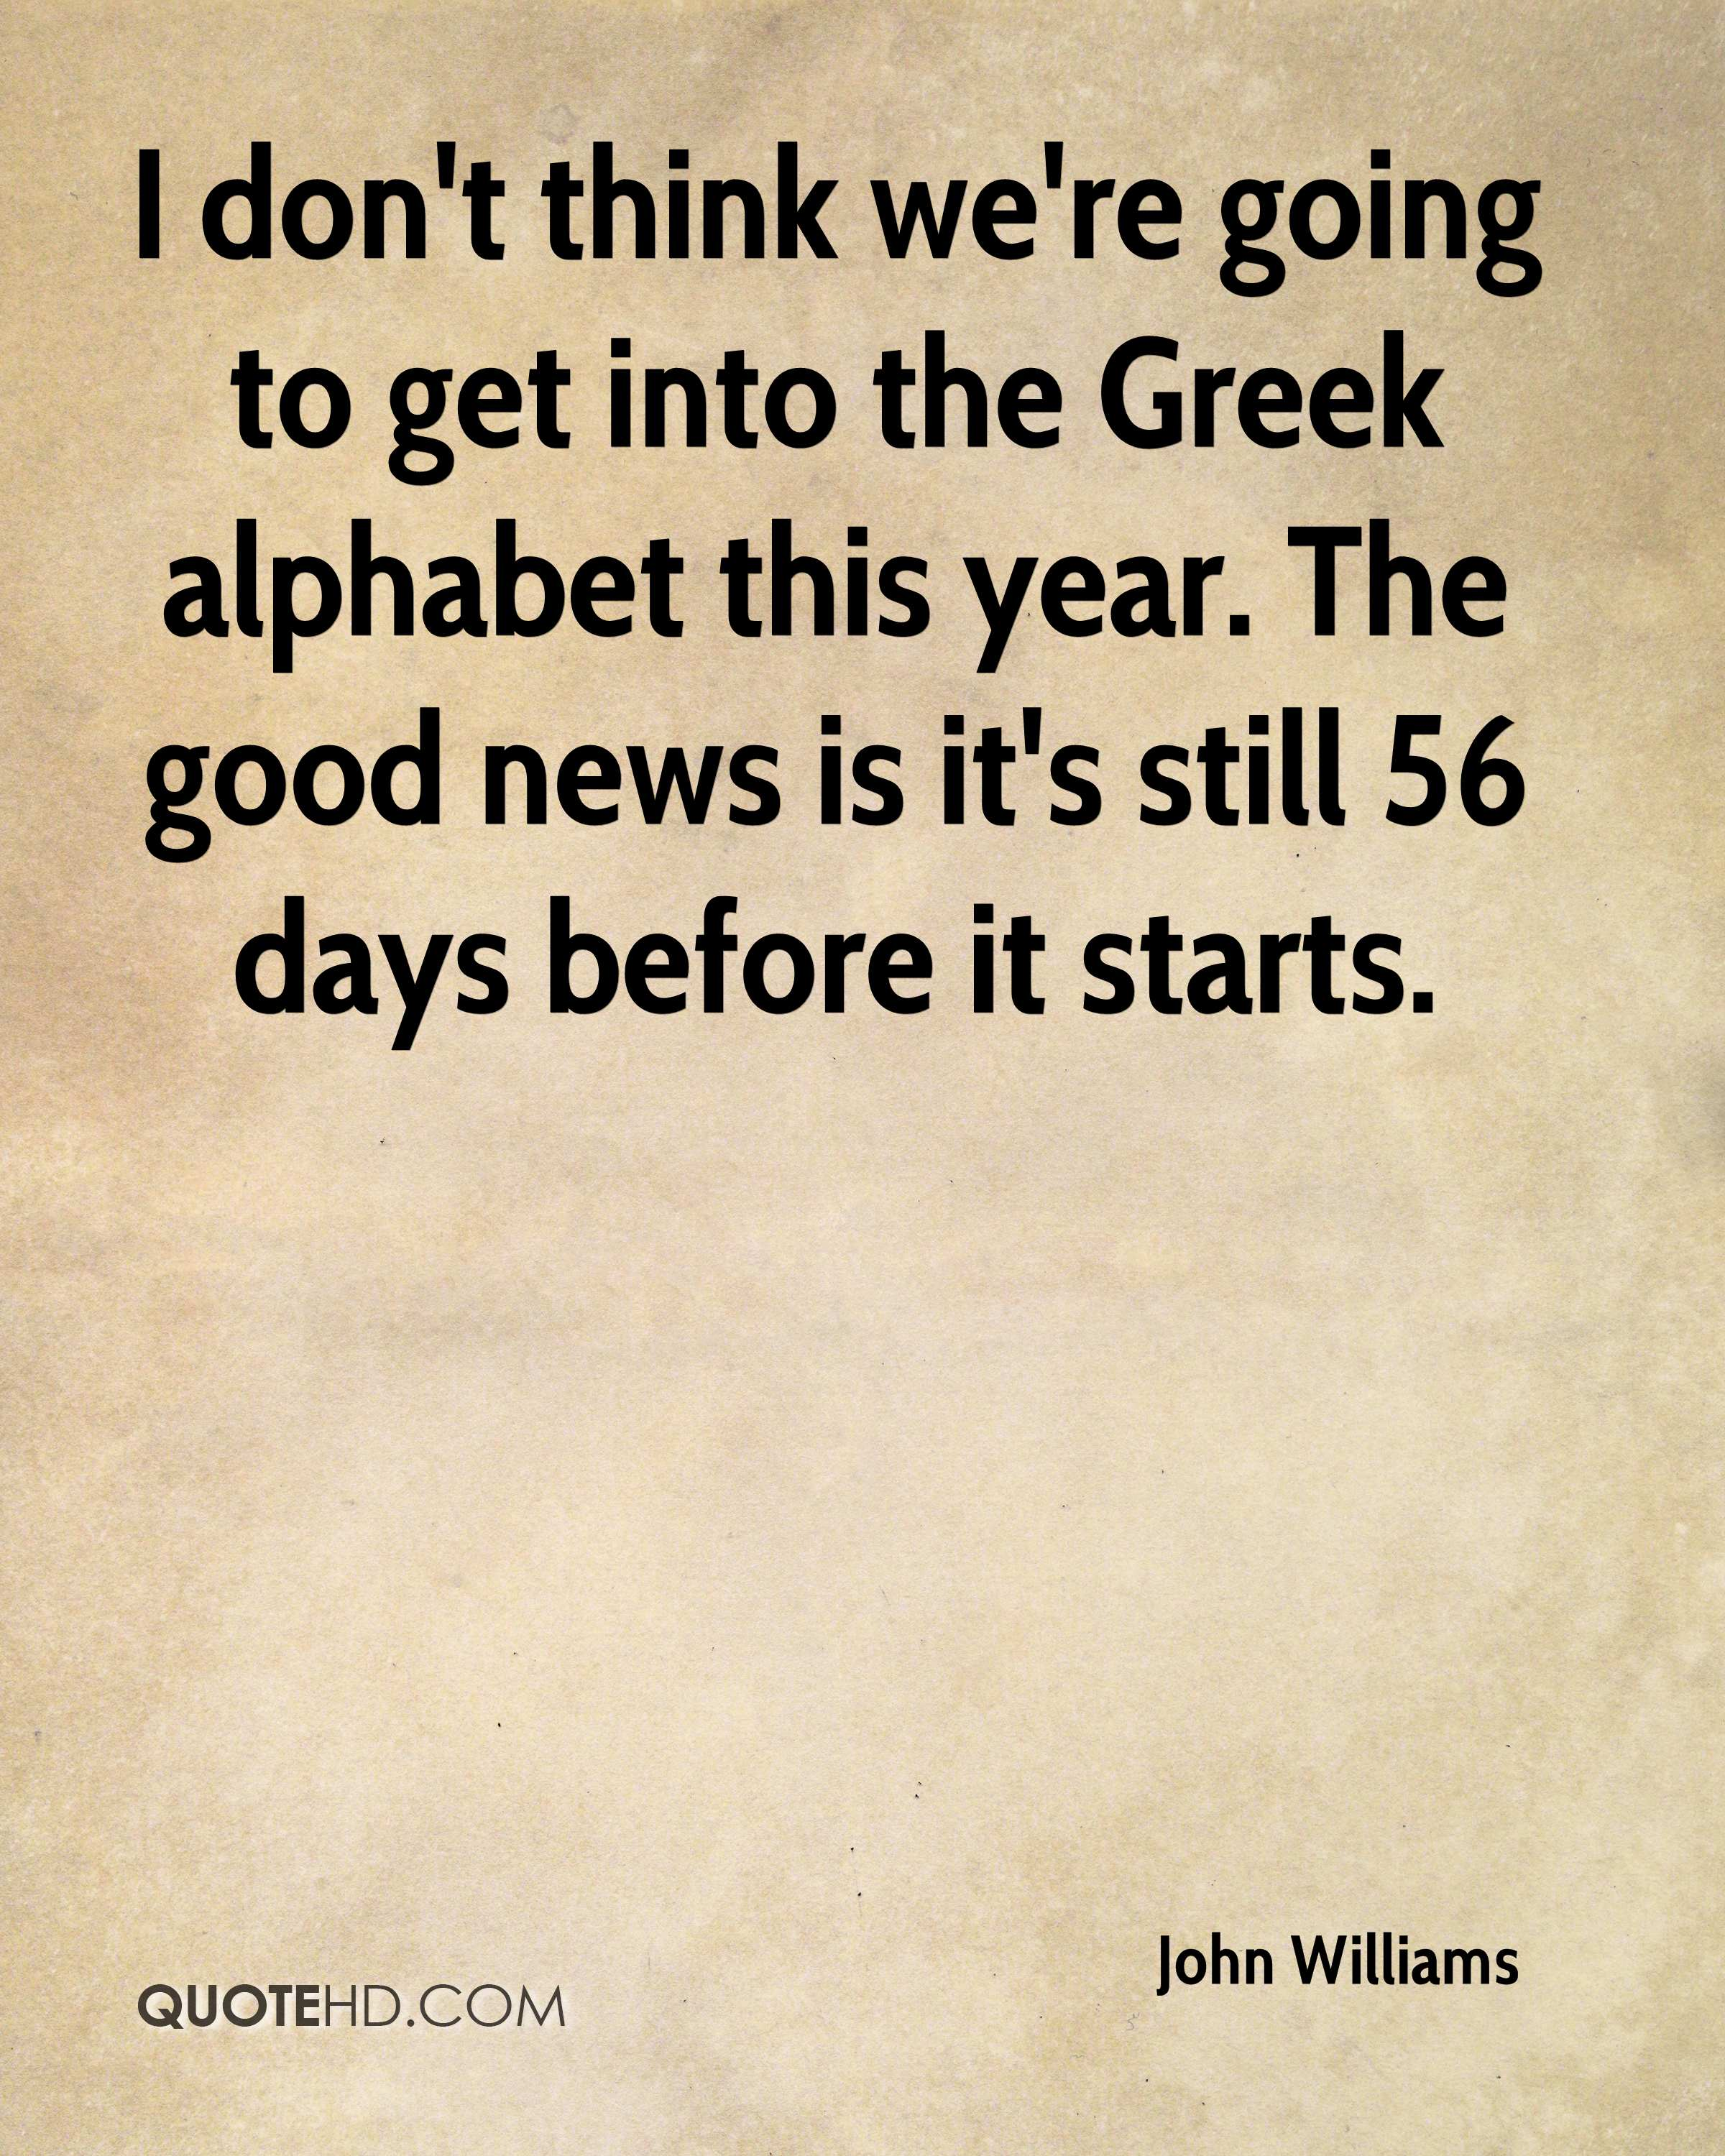 I don't think we're going to get into the Greek alphabet this year. The good news is it's still 56 days before it starts.